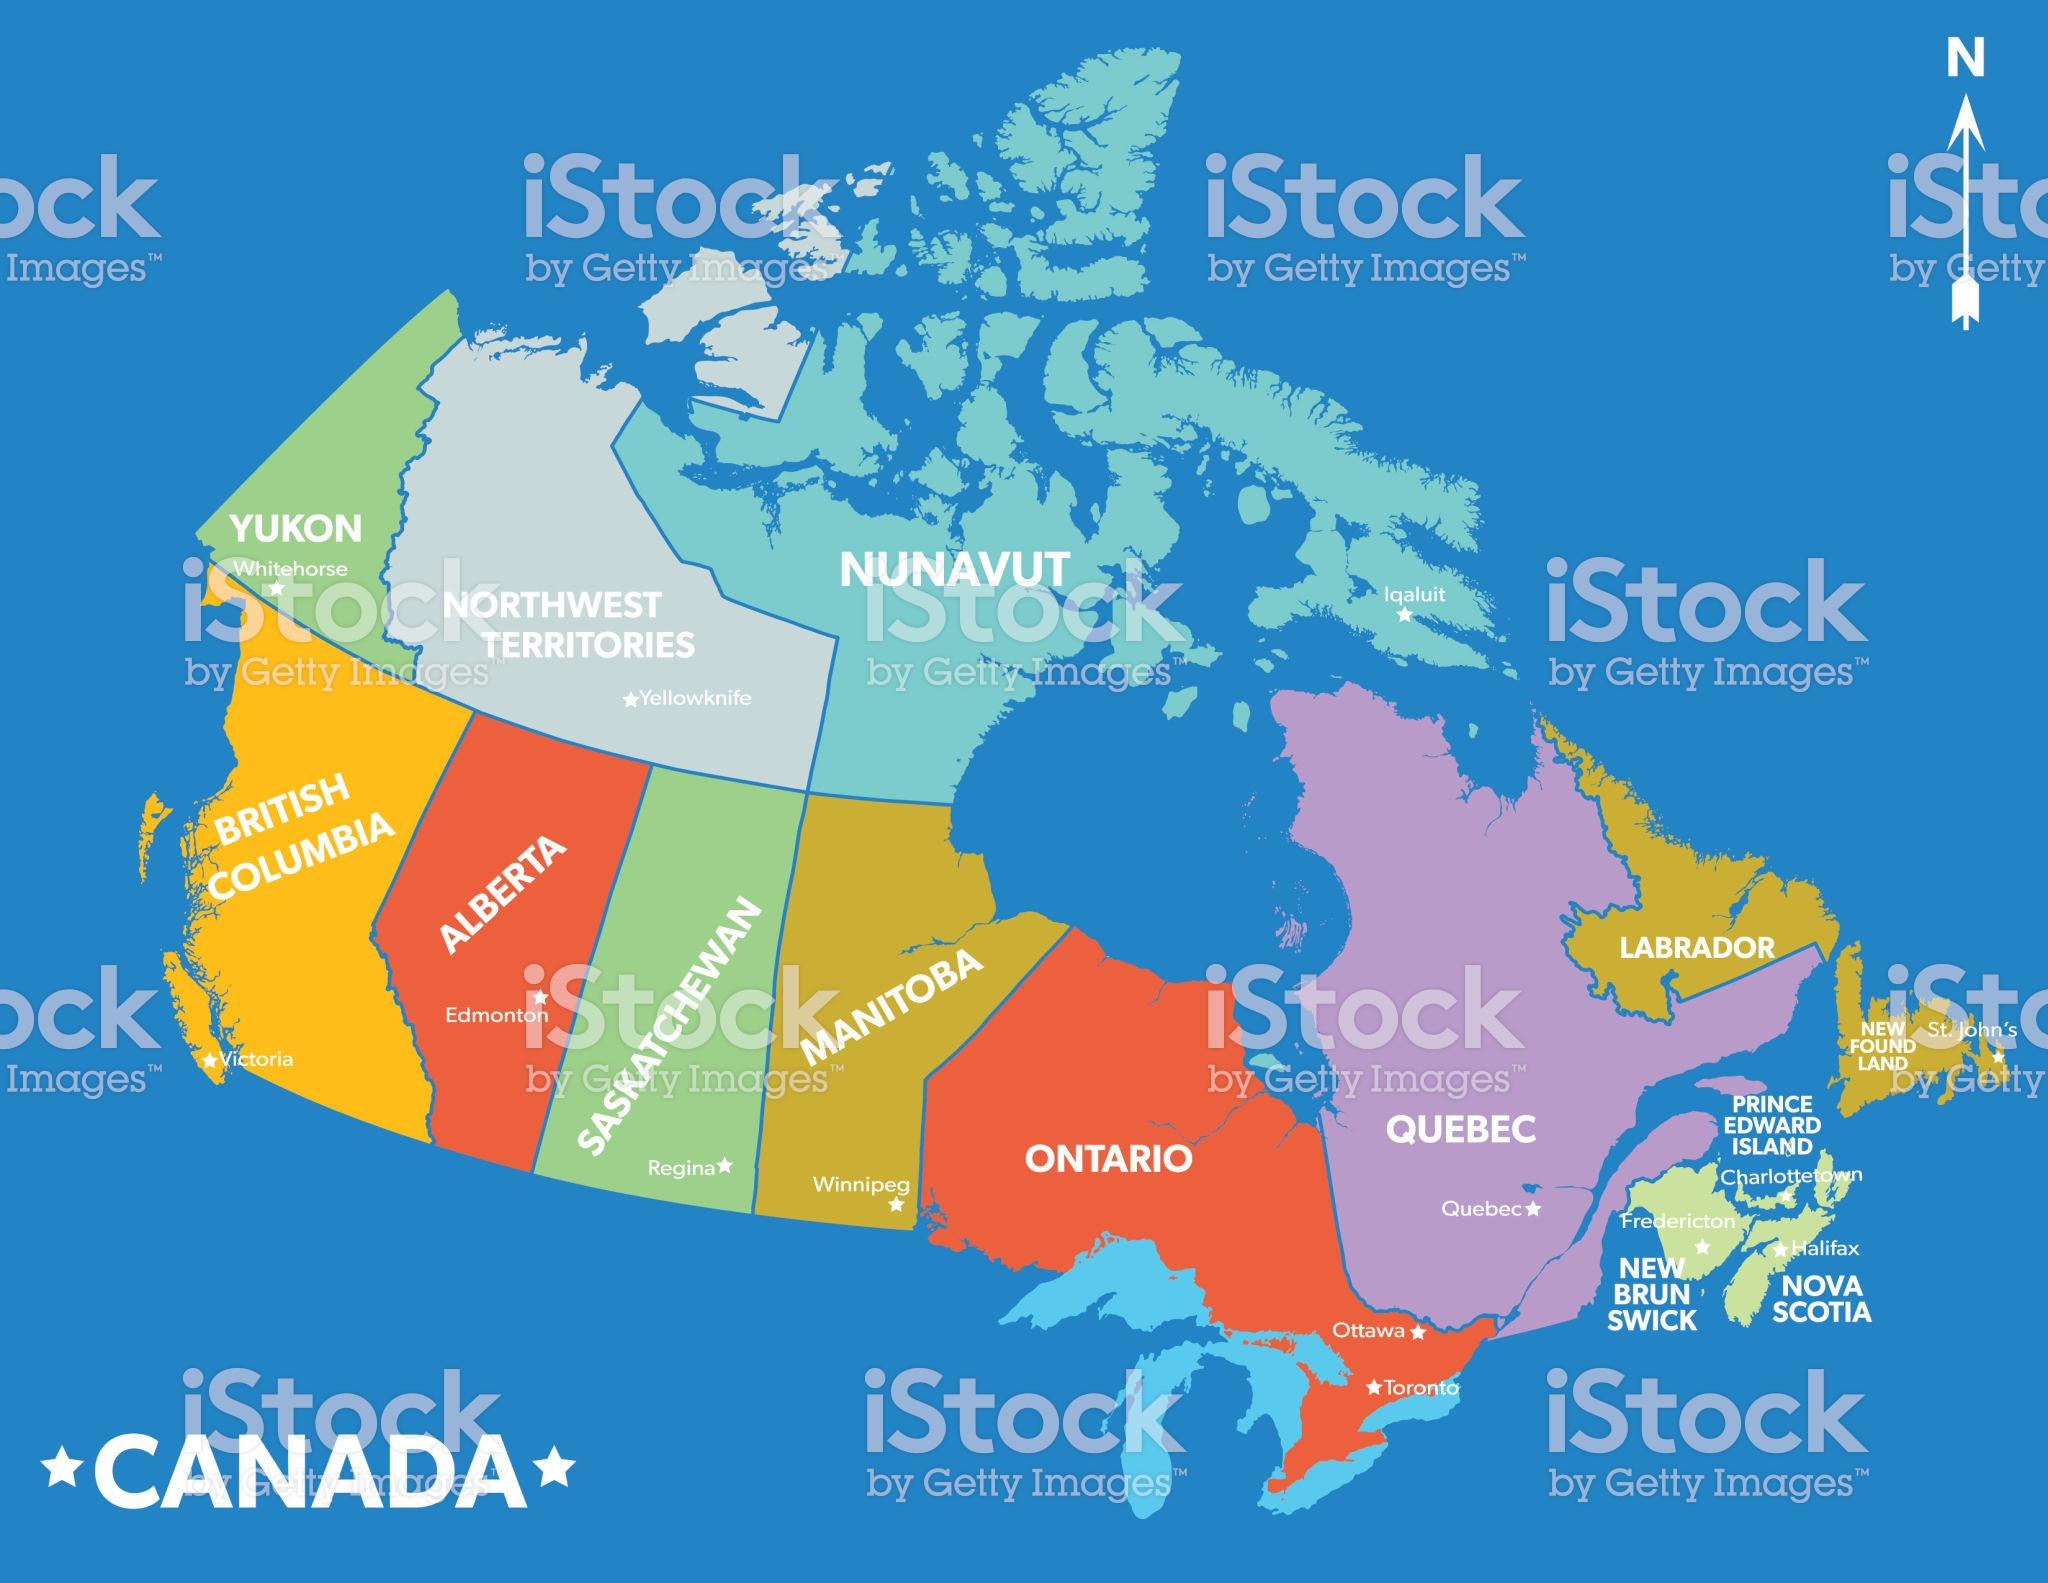 Coloured Map Of Canada With Provinces Colourful Map Of Canada with divided provinces. | Colorful map